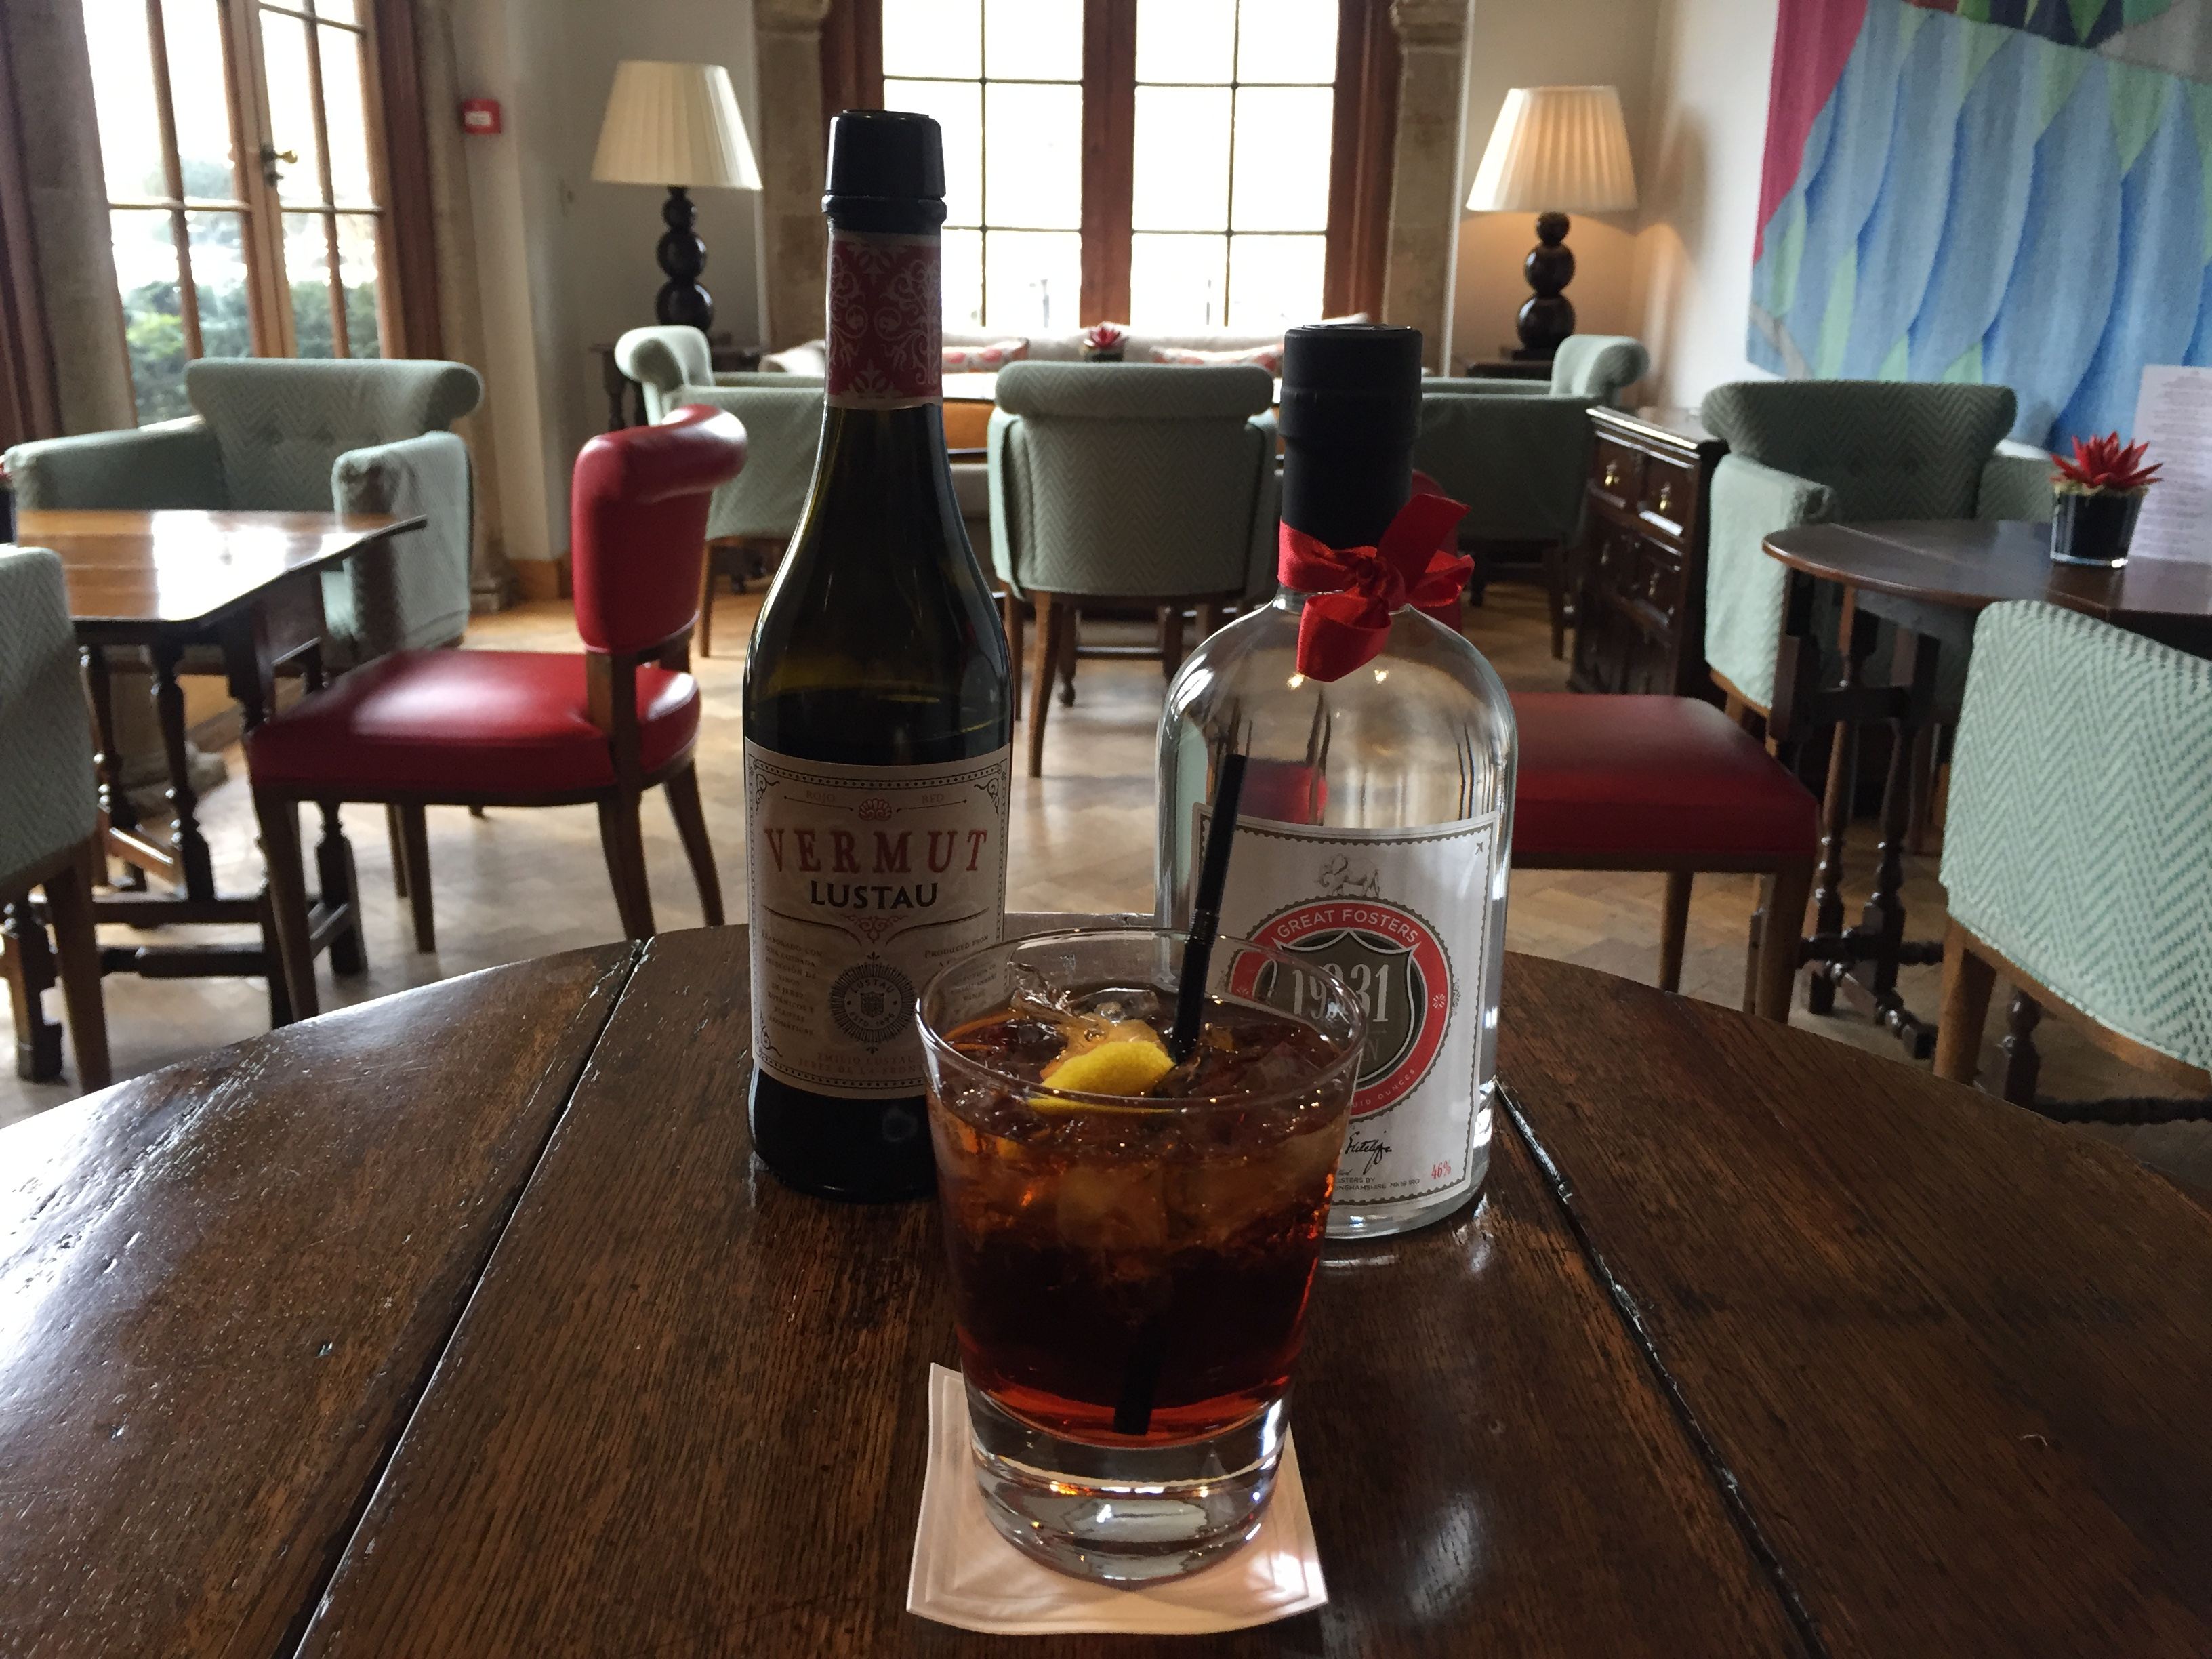 Negroni great fosters